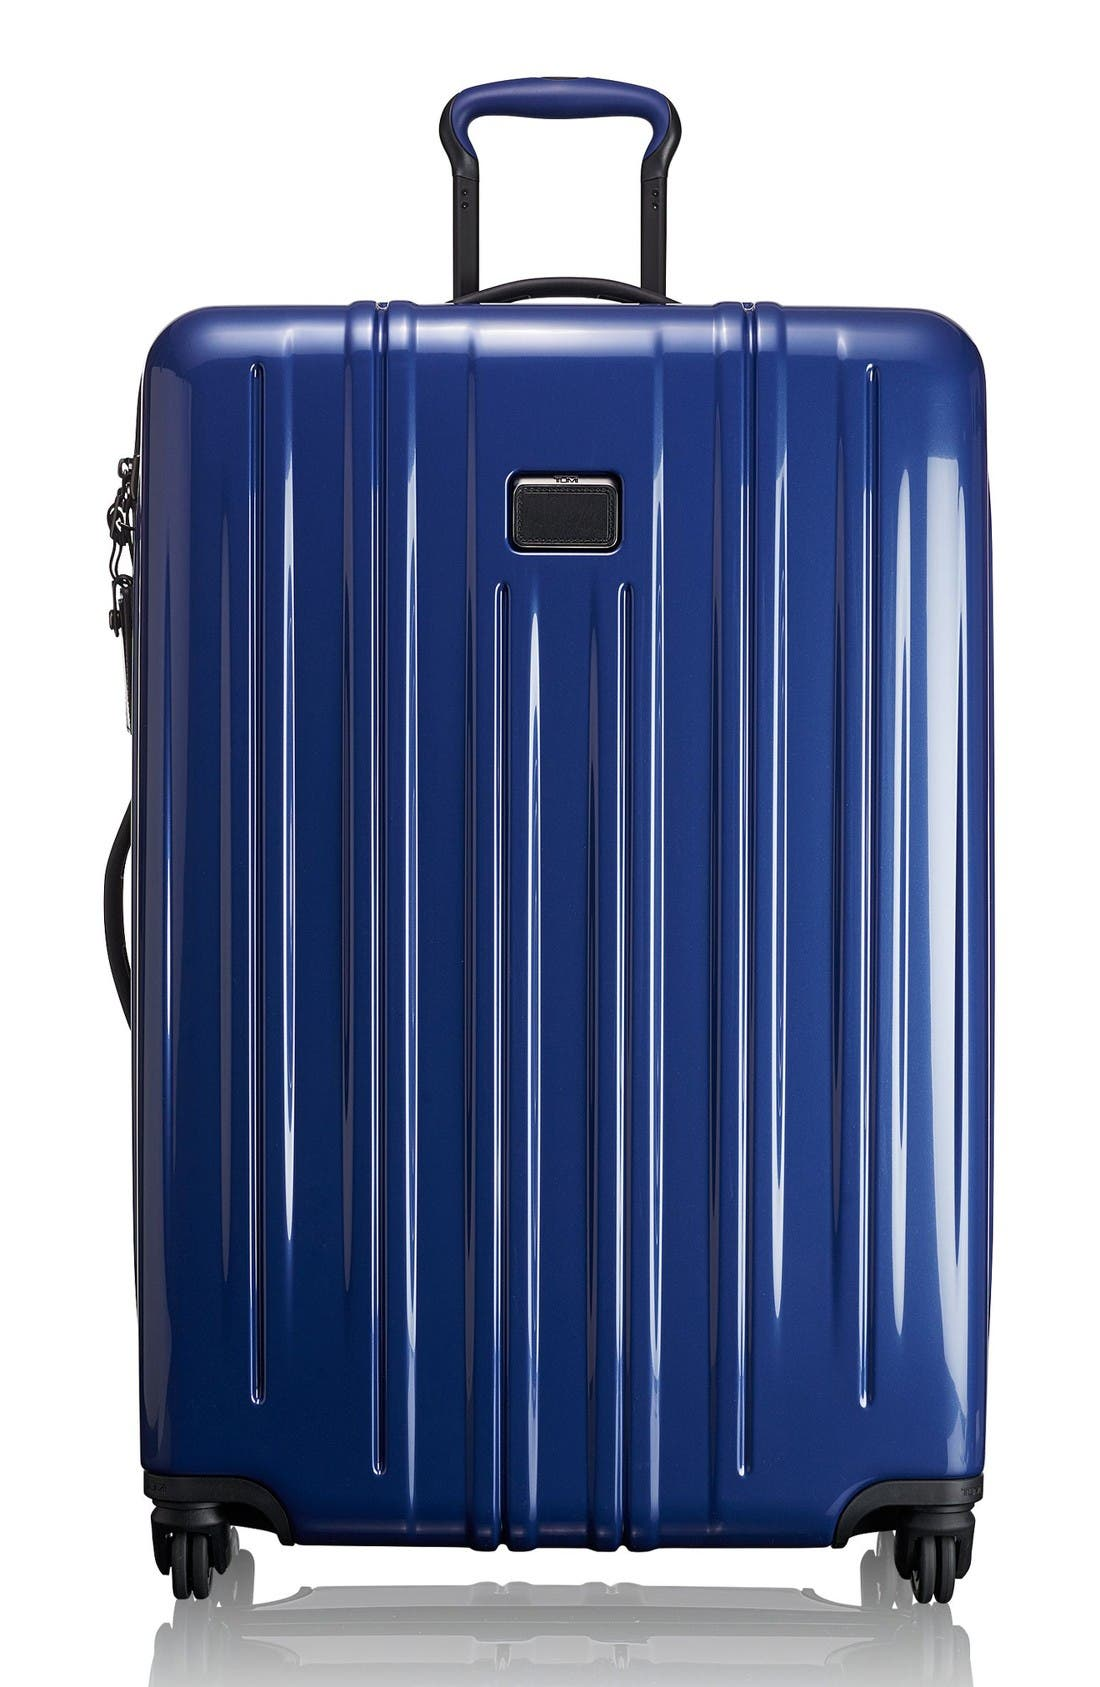 Tumi 'V3' Extended Trip Wheeled Packing Case (31 Inch)